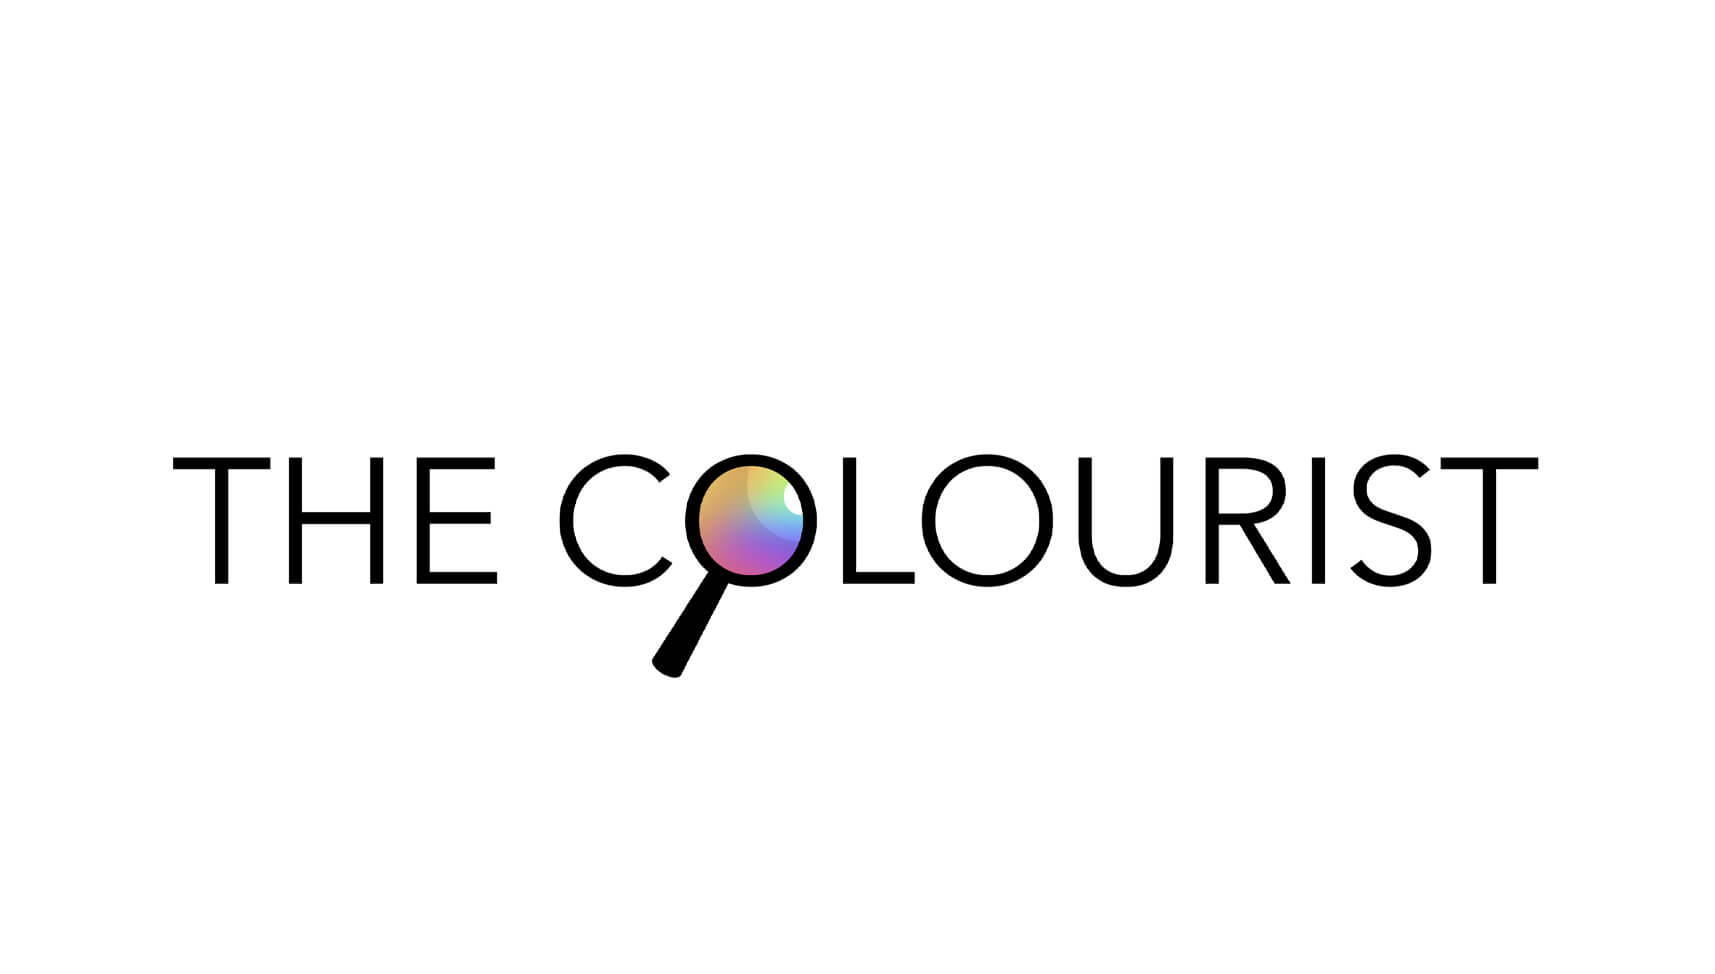 Roses are red, violets are blue by 'The Colourist'